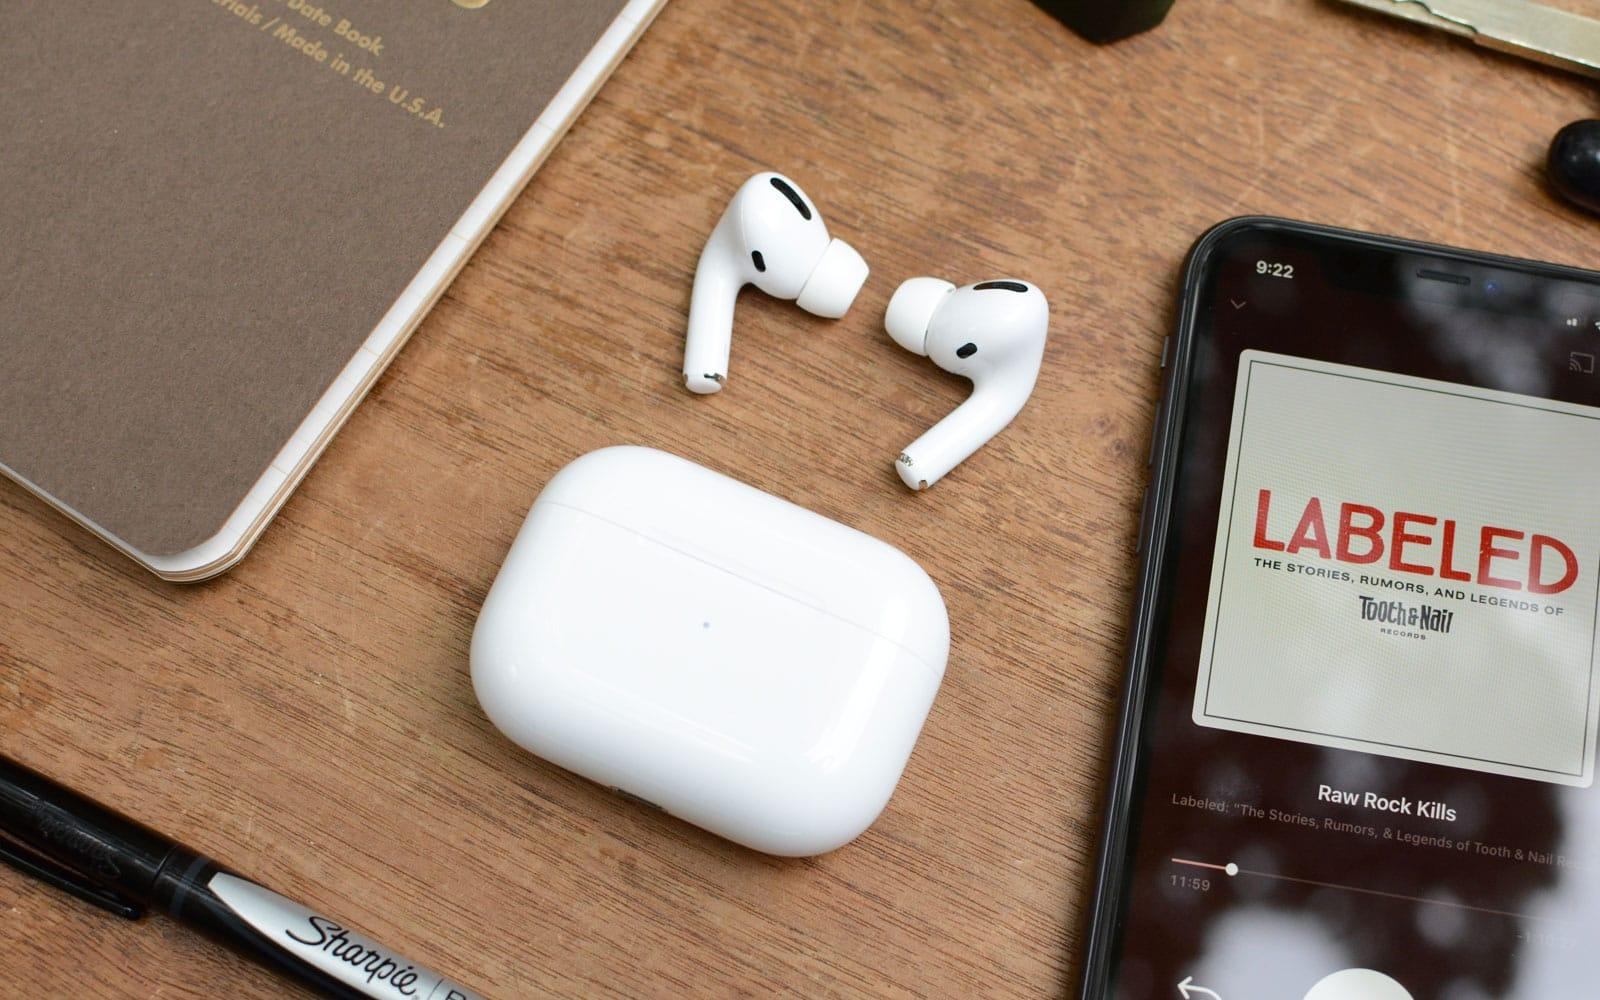 AirPods Pro review: Apple's latest earbuds can hang with the best